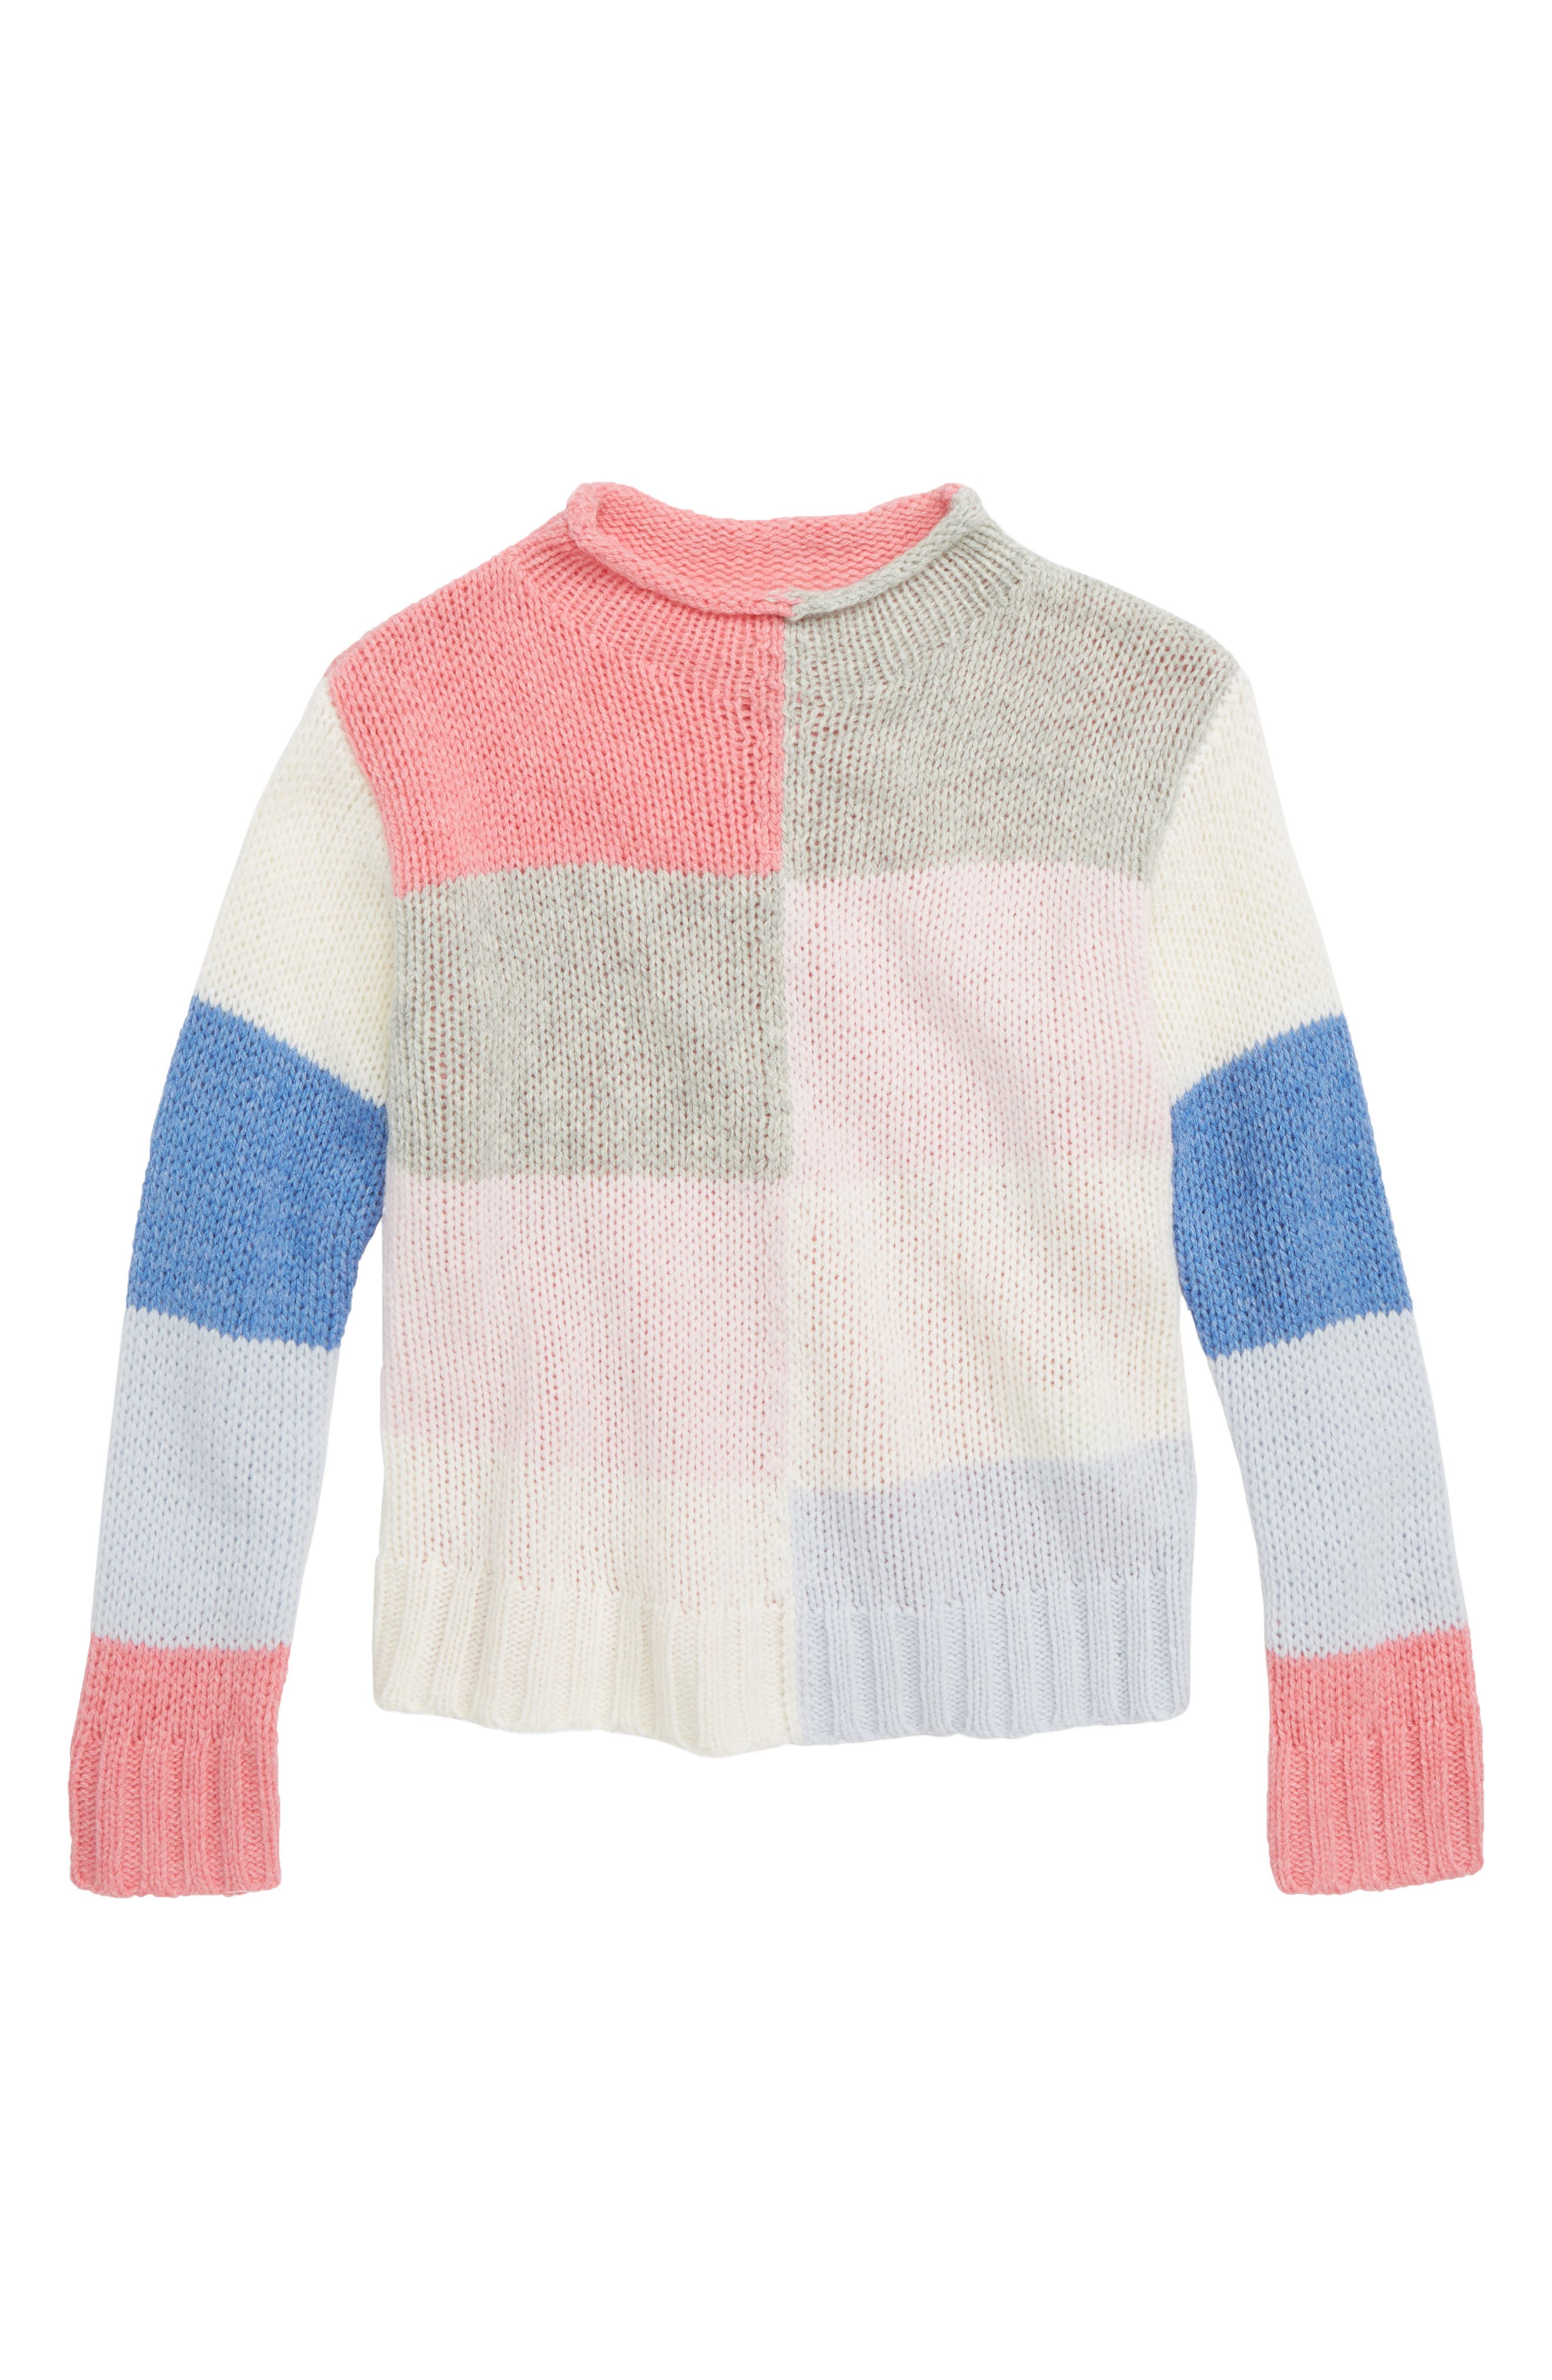 Girls Crewcuts By Jcrew Colorblock Rollneck(TM) Sweater Size 14  Blue